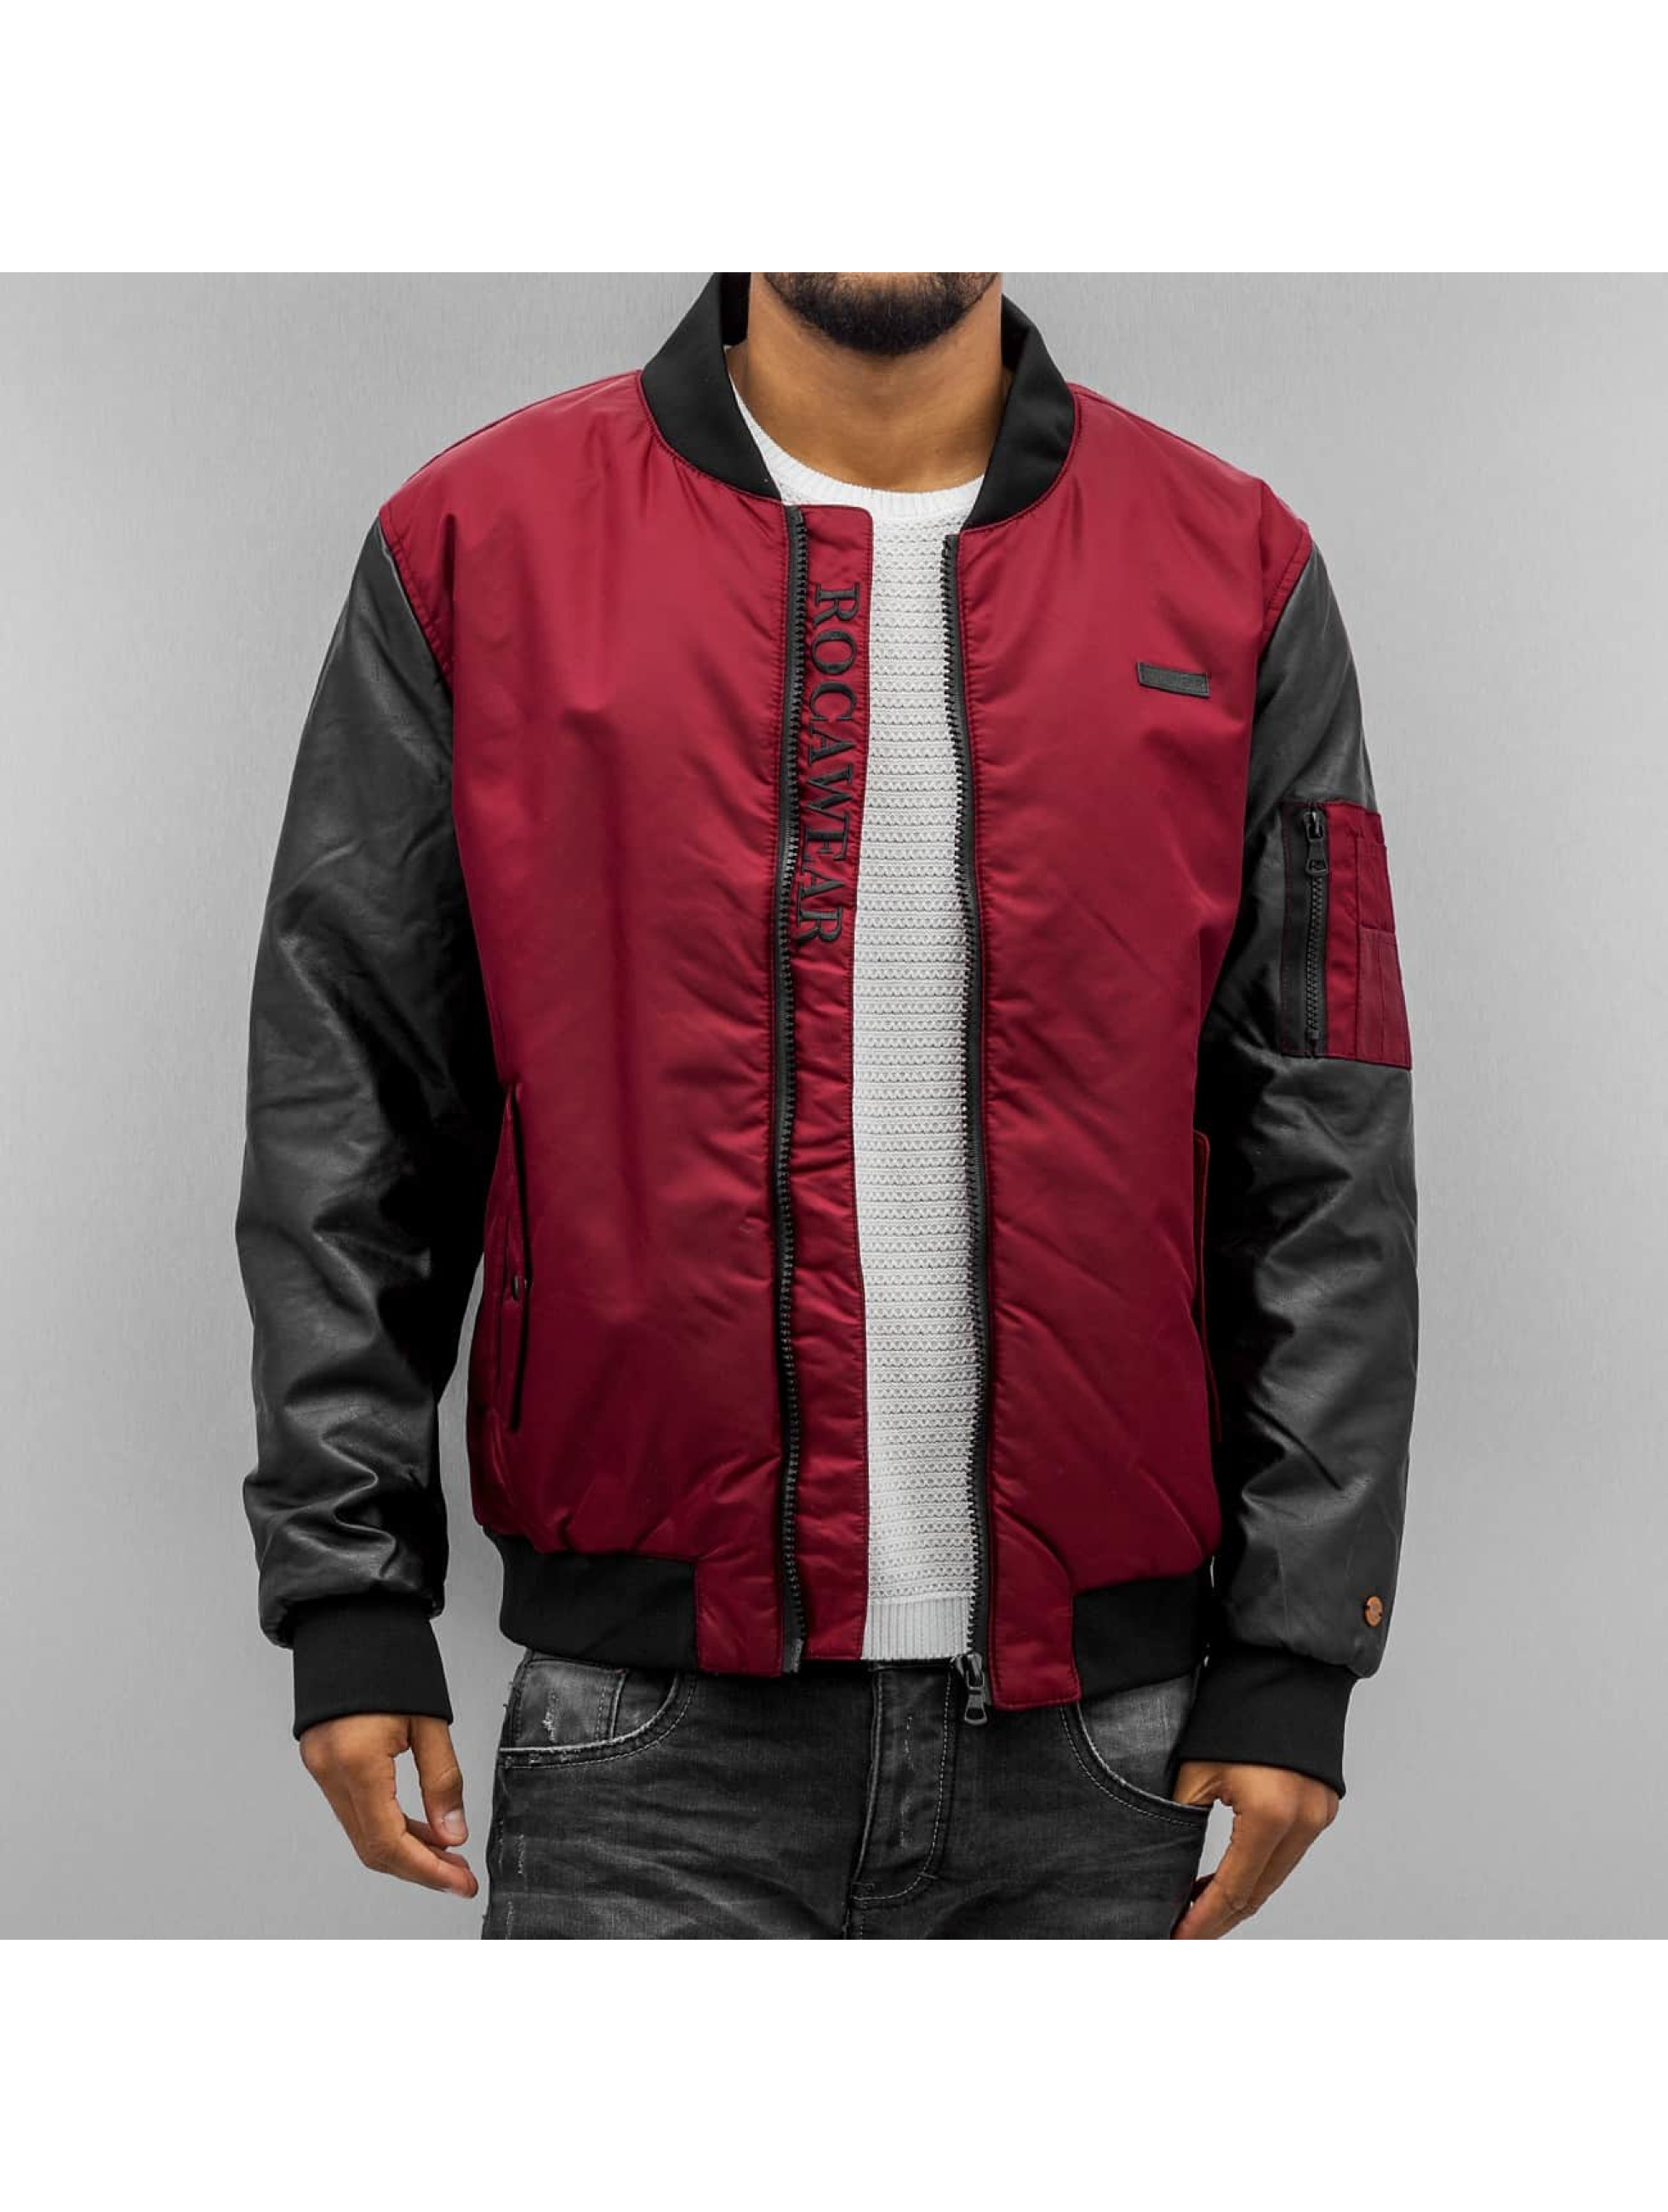 Rocawear / Bomber jacket Bomber in red S